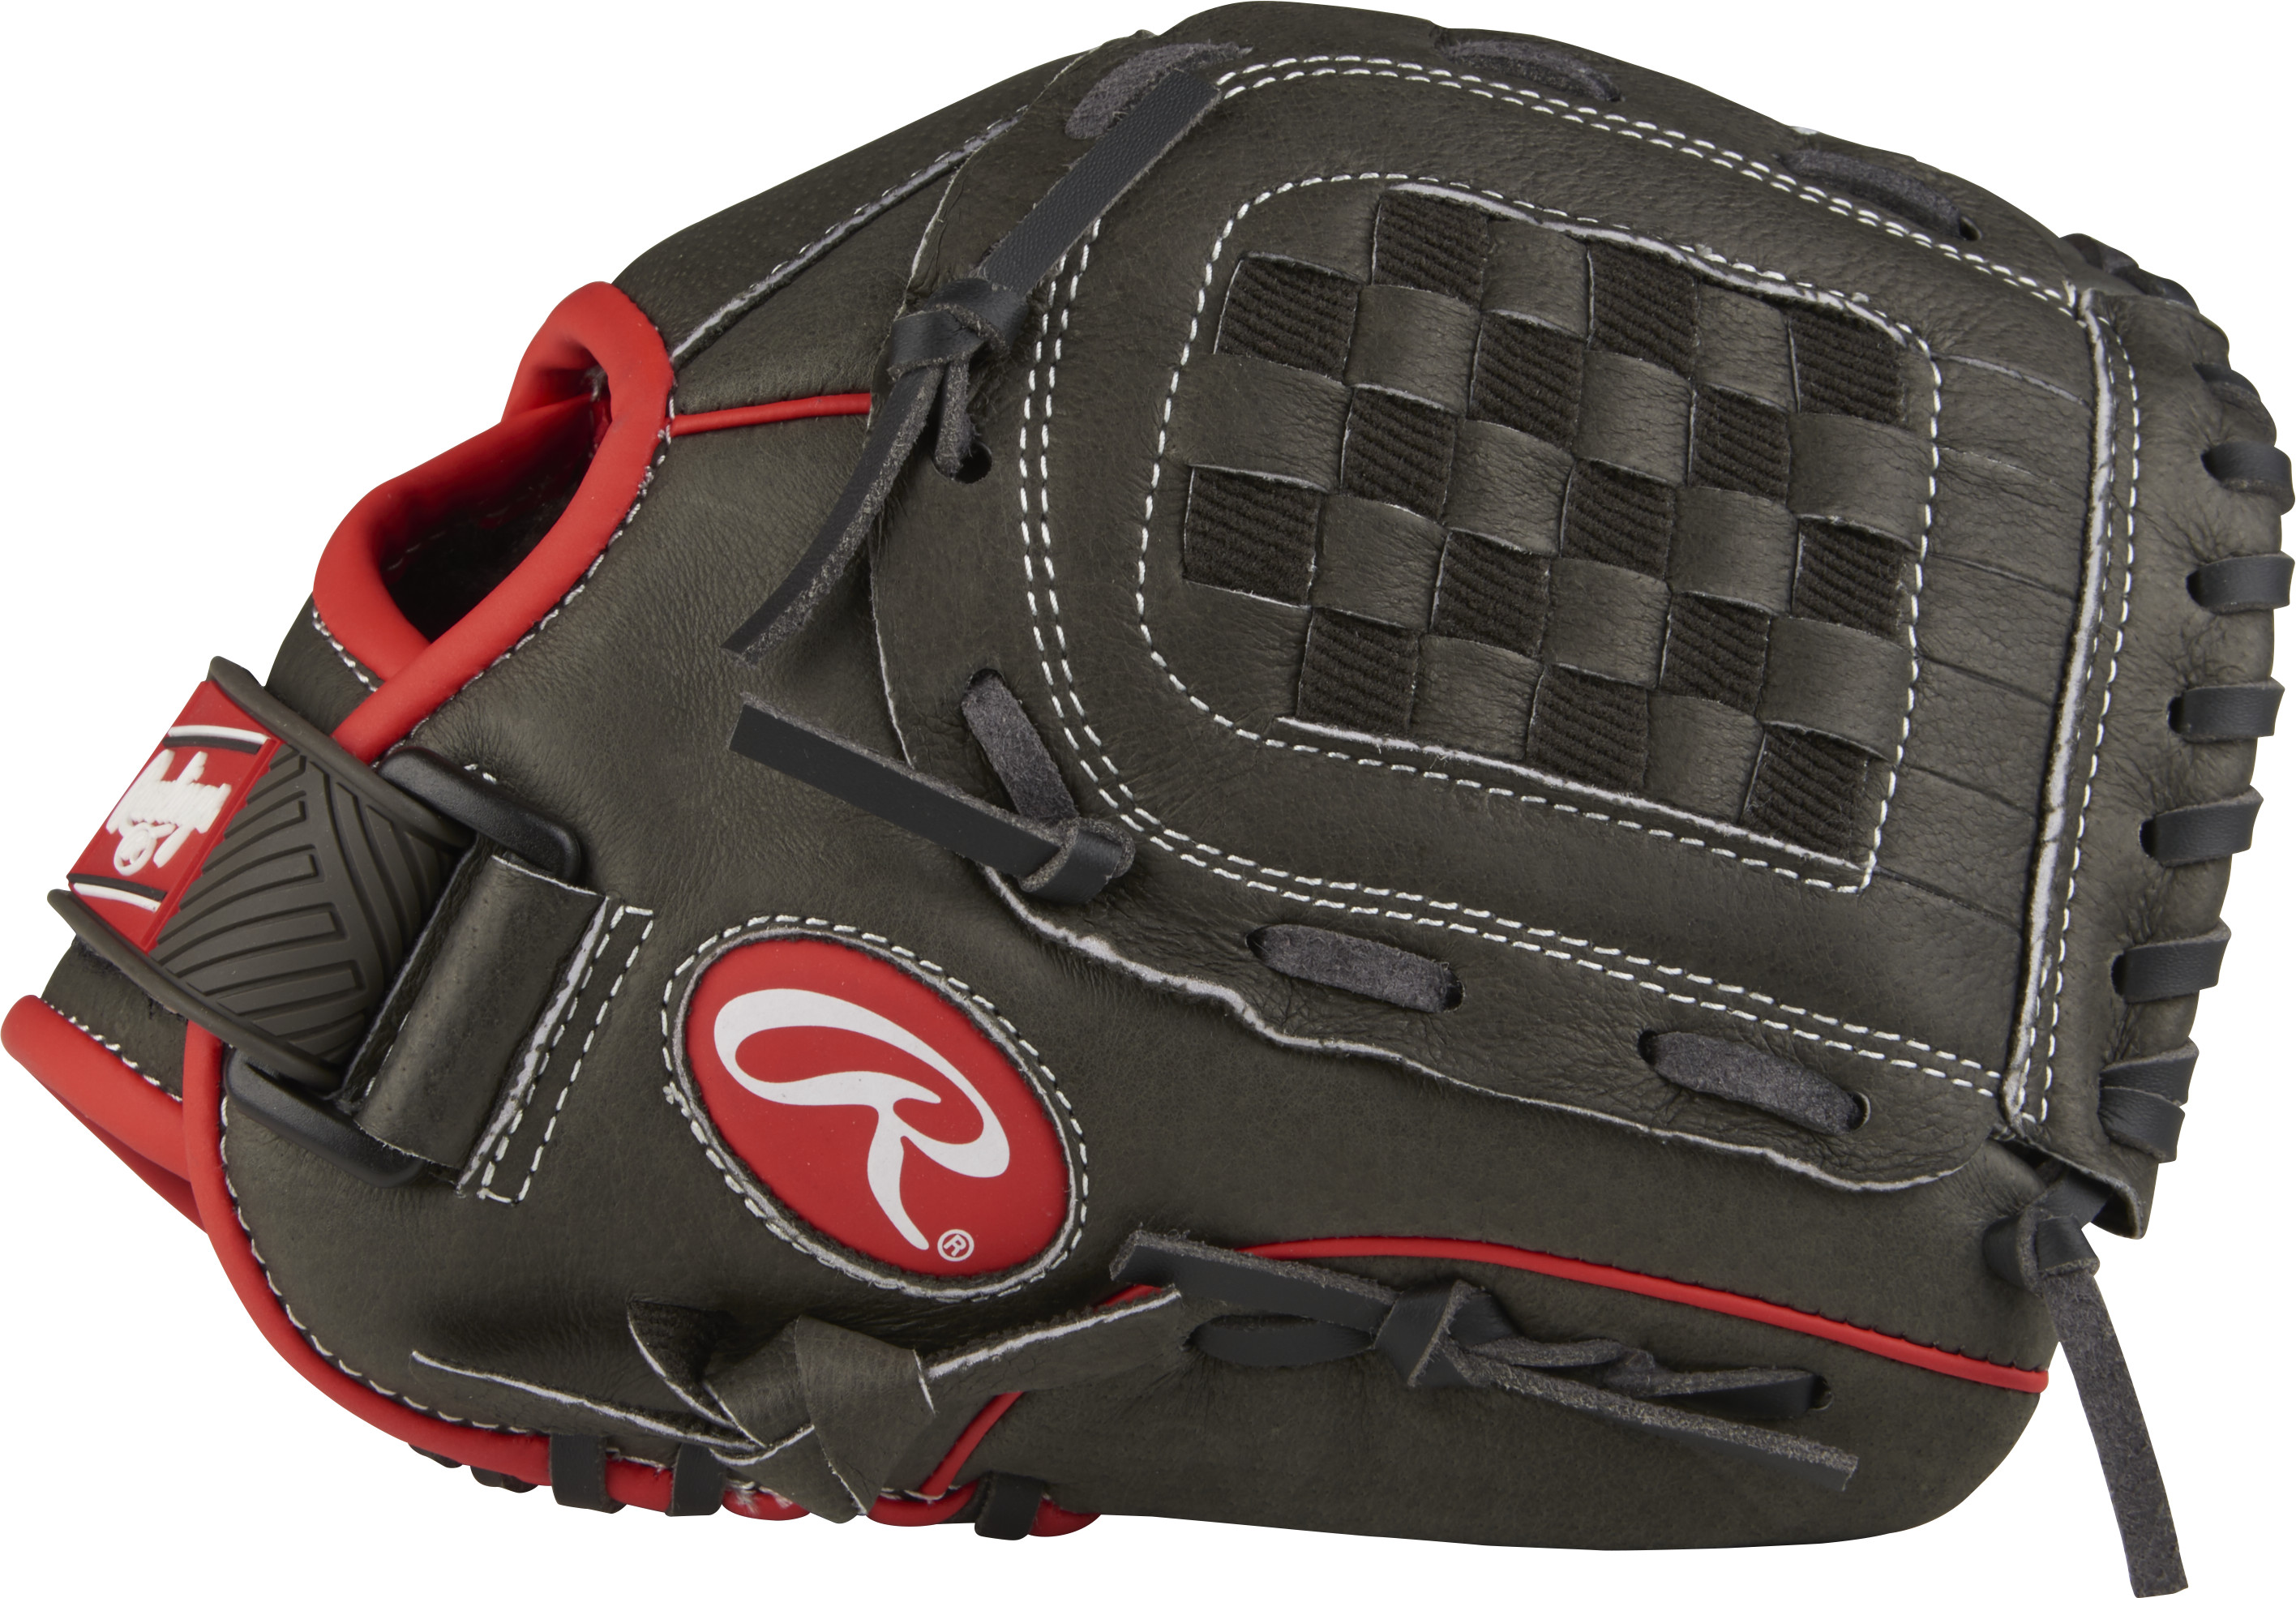 http://www.bestbatdeals.com/images/gloves/rawlings/MPL105DSB-3.jpg